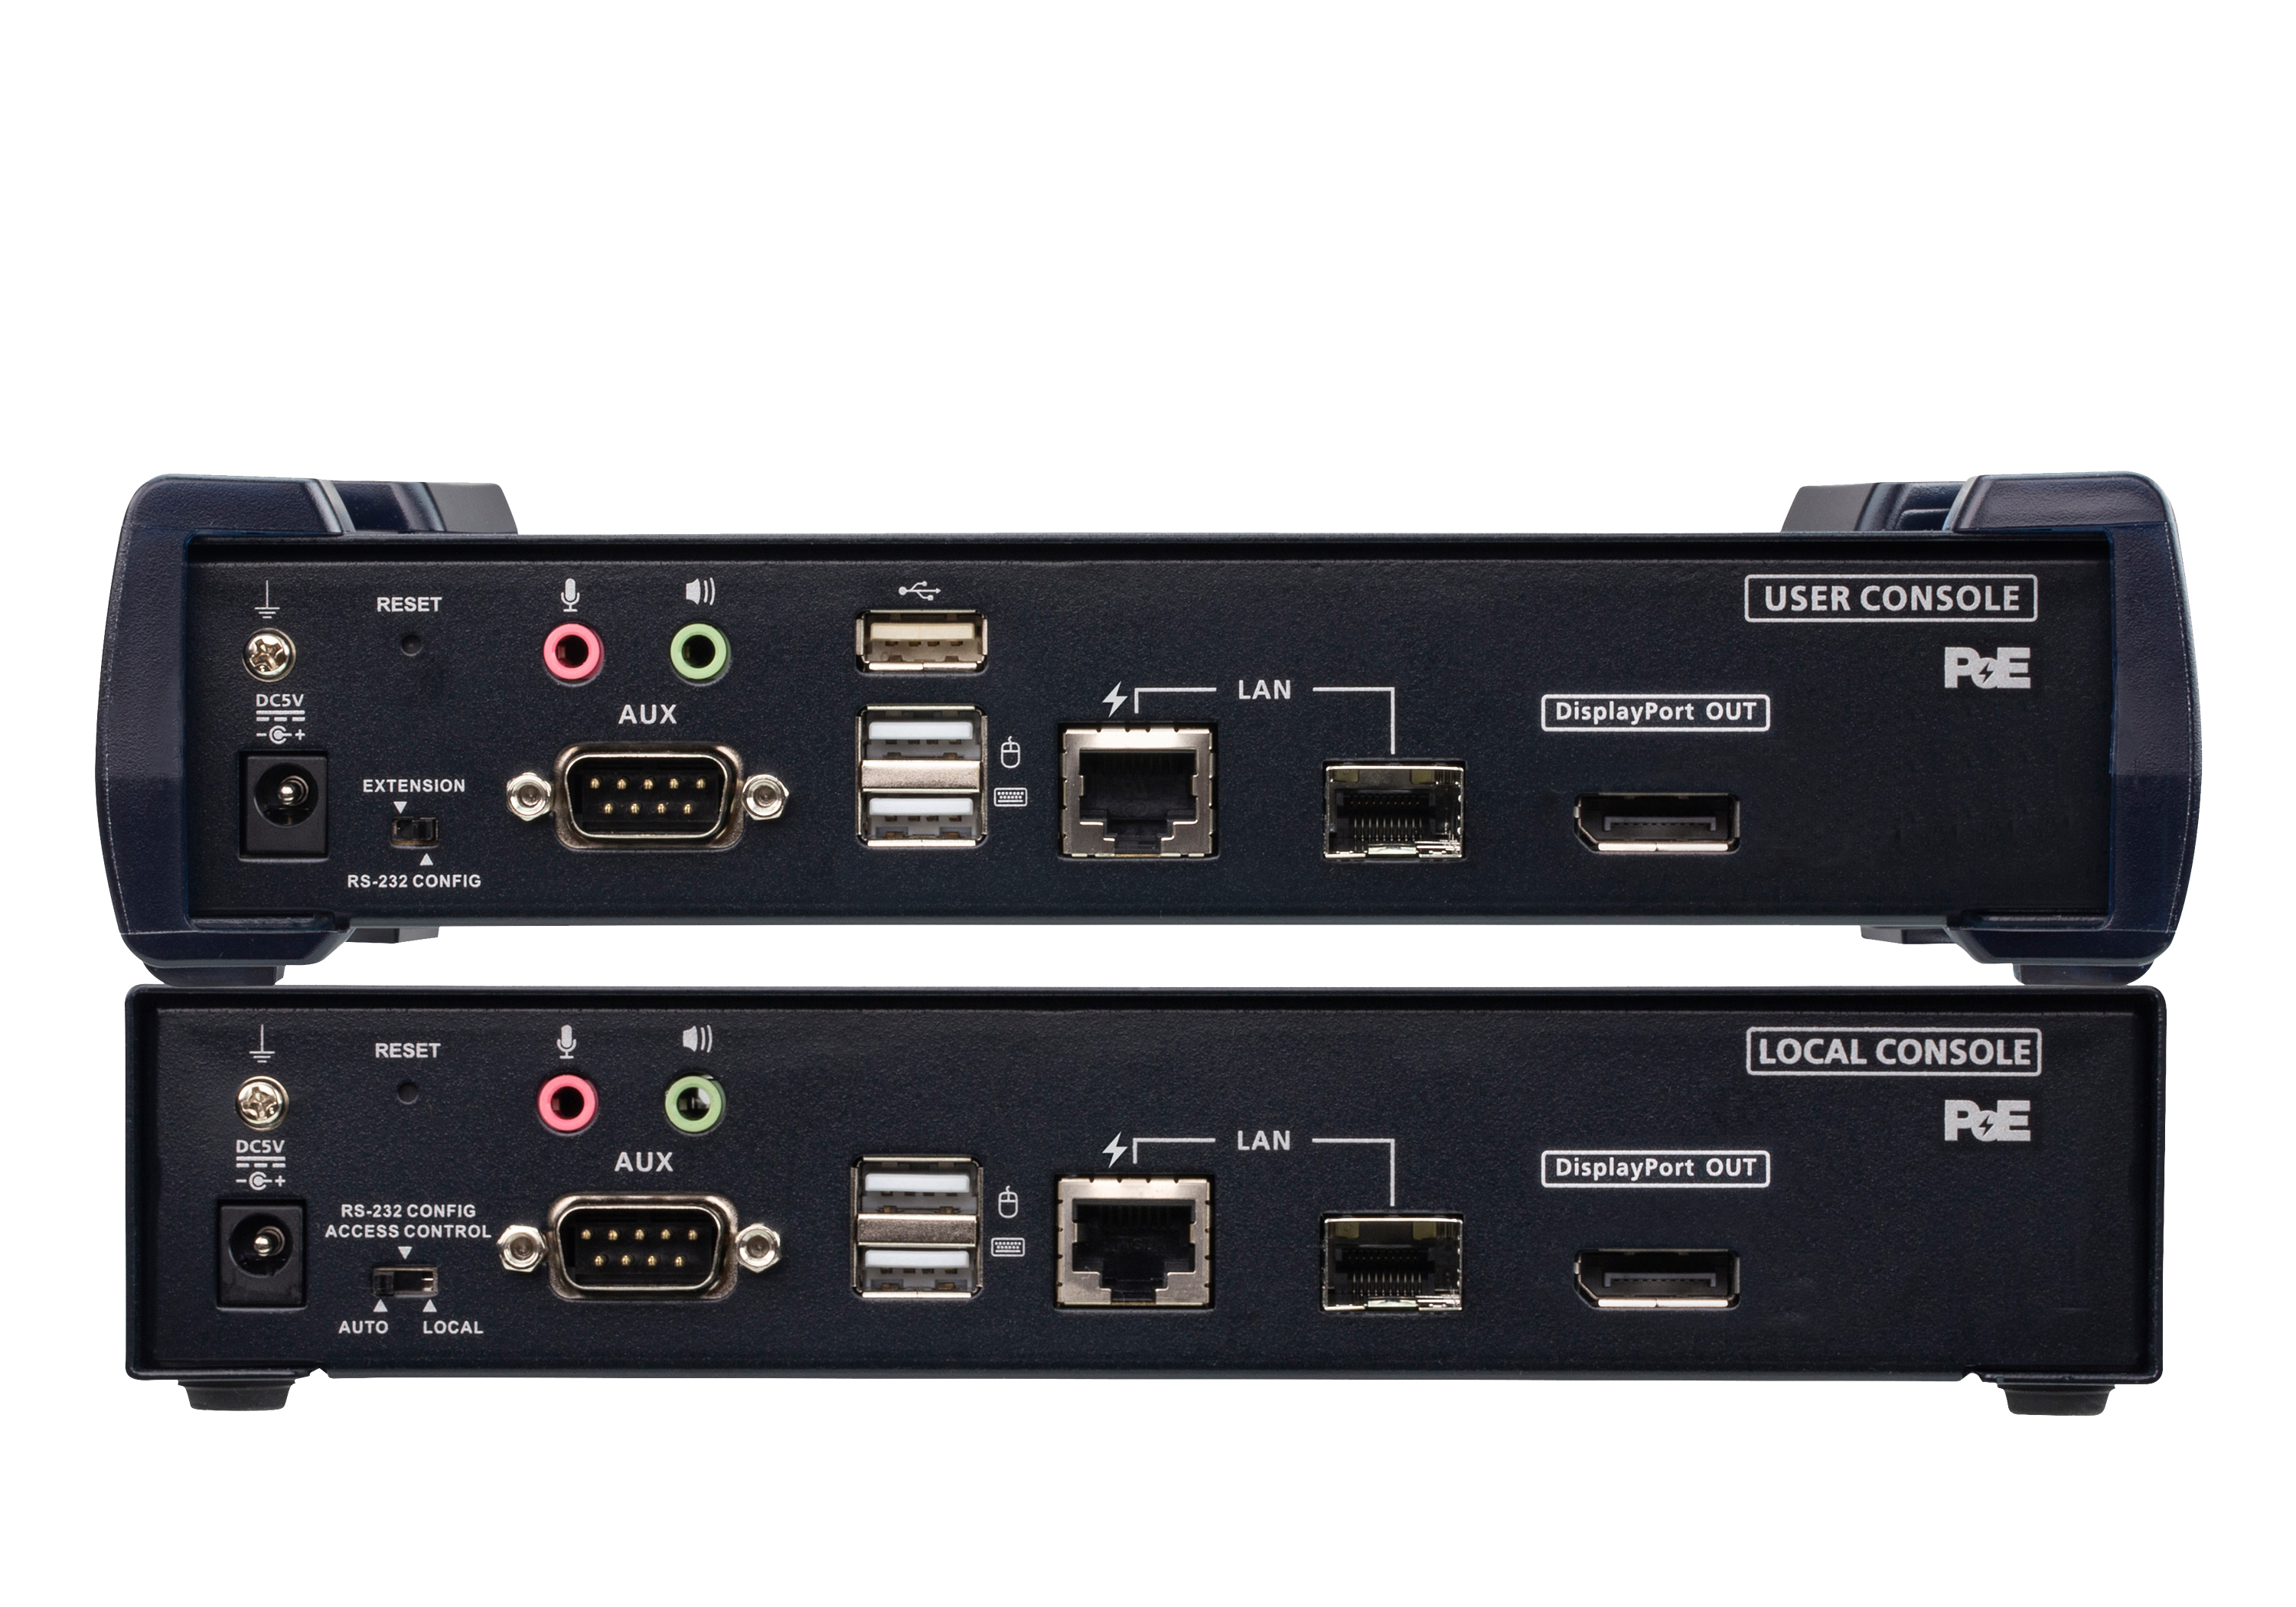 4K DisplayPort enkel display KVM Over IP-uitbreiding met PoE-2